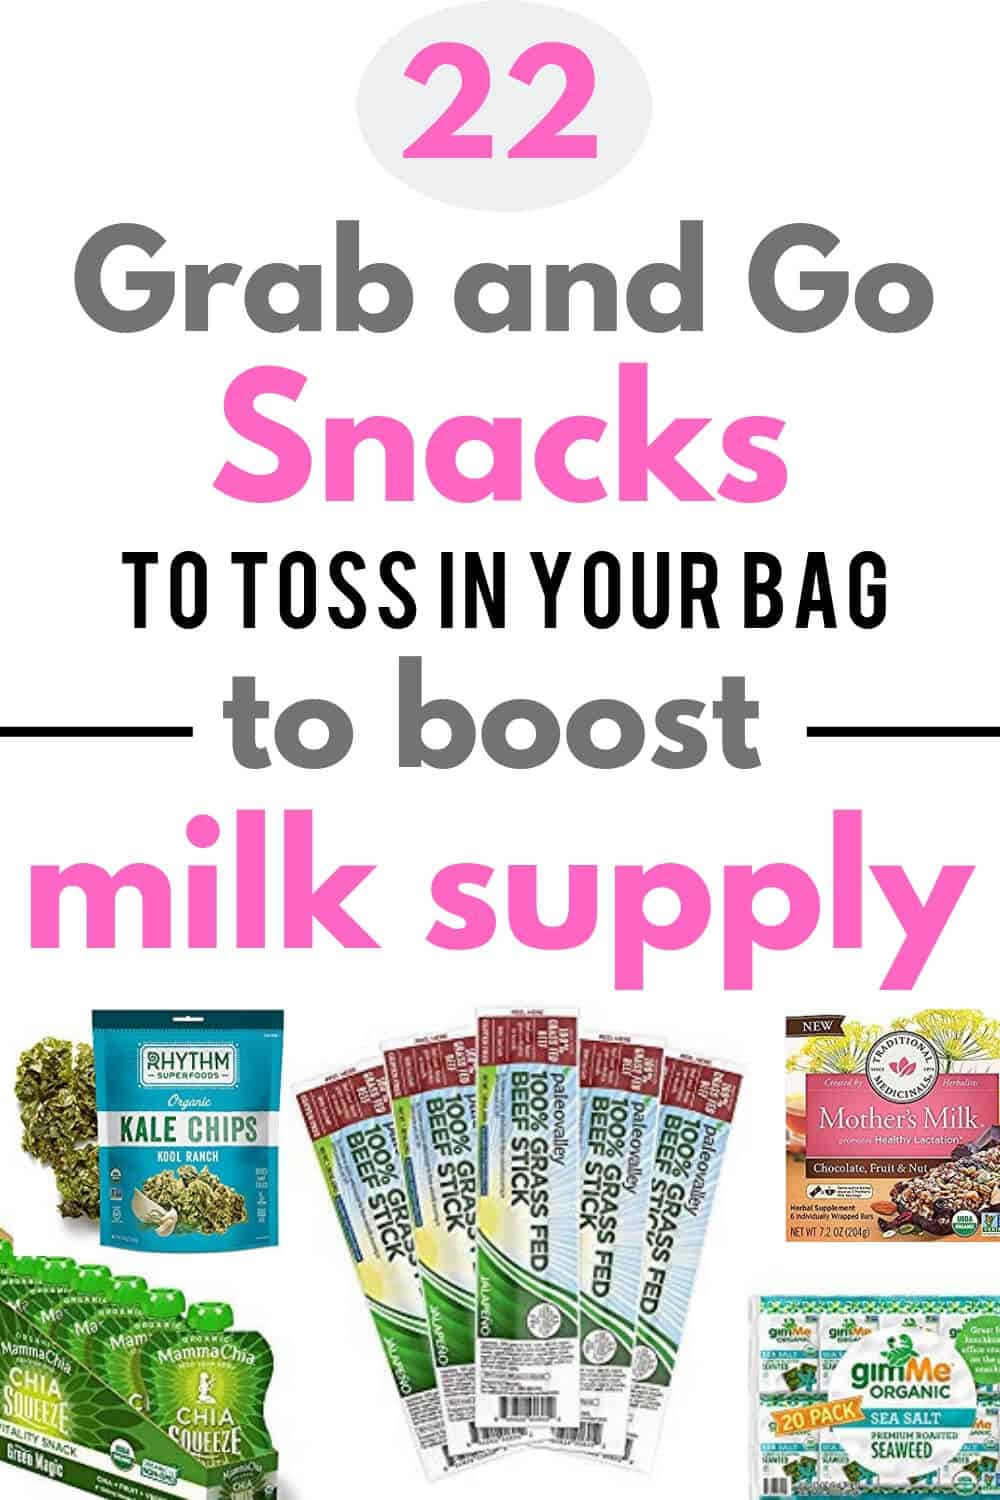 Healthy breastfeeding snacks for on the go Moms. Quick and easy snacks to buy and toss in you purse or pump bag. These store bought snacks ideas are yummy and good for you - low in sugar + high in protein! Boost your milk supply with these 22 lactation snacks! #breastfeeding #milksupply #lactation